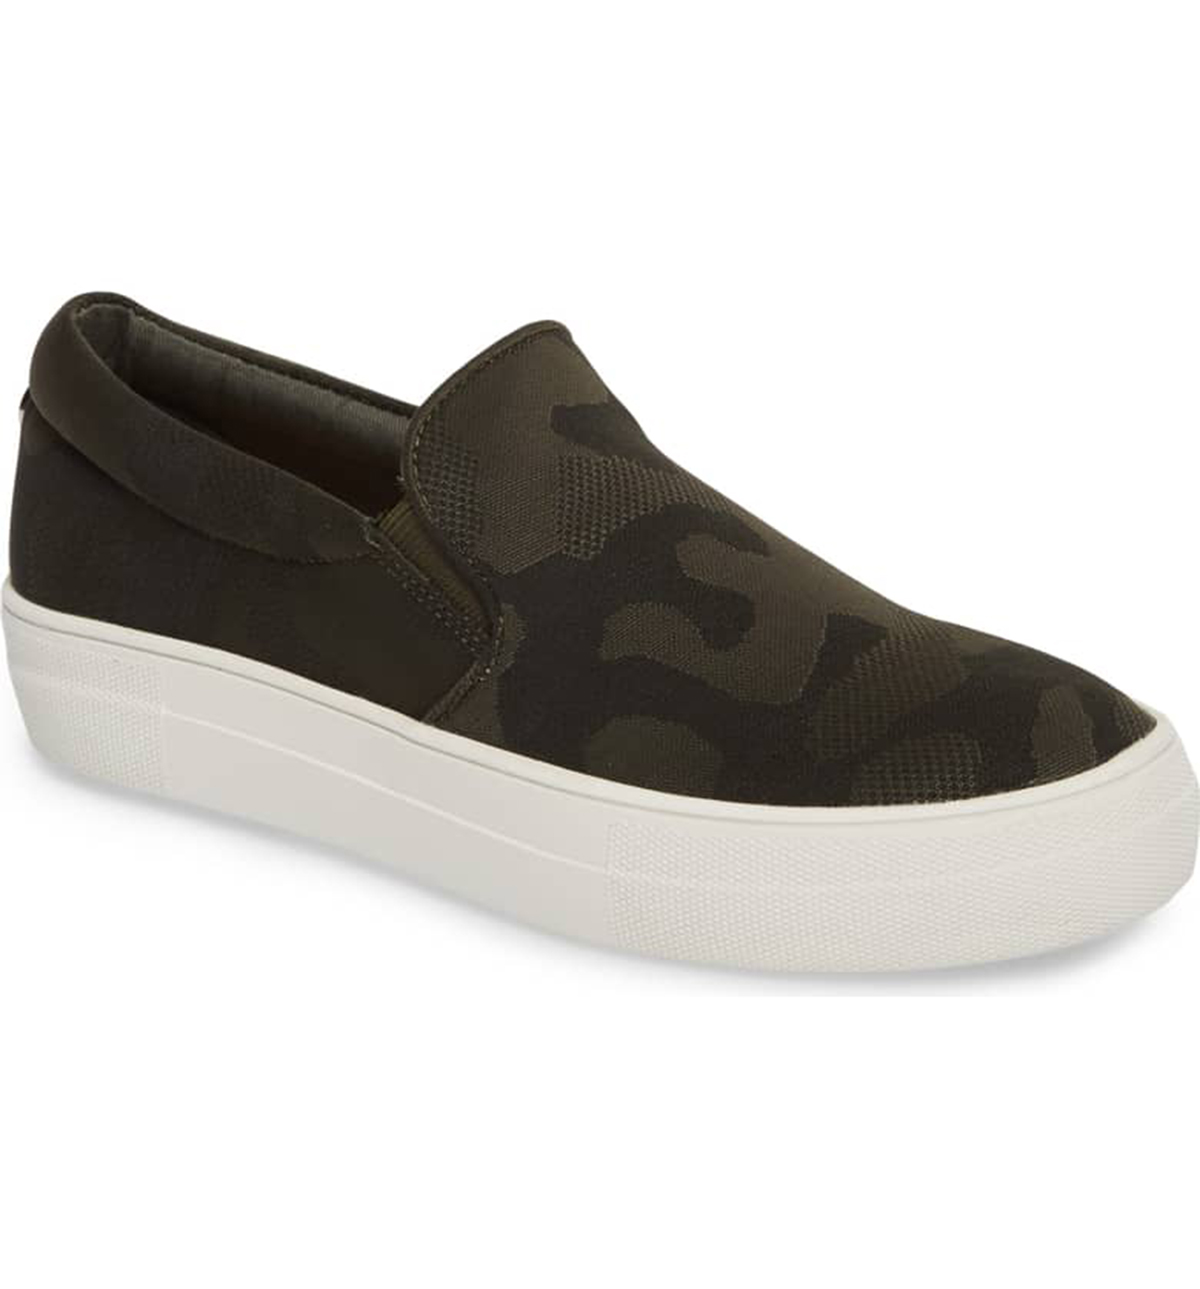 ee65e696873 We re Stepping Into Spring With These Top-Rated Slip-On Sneakers ...